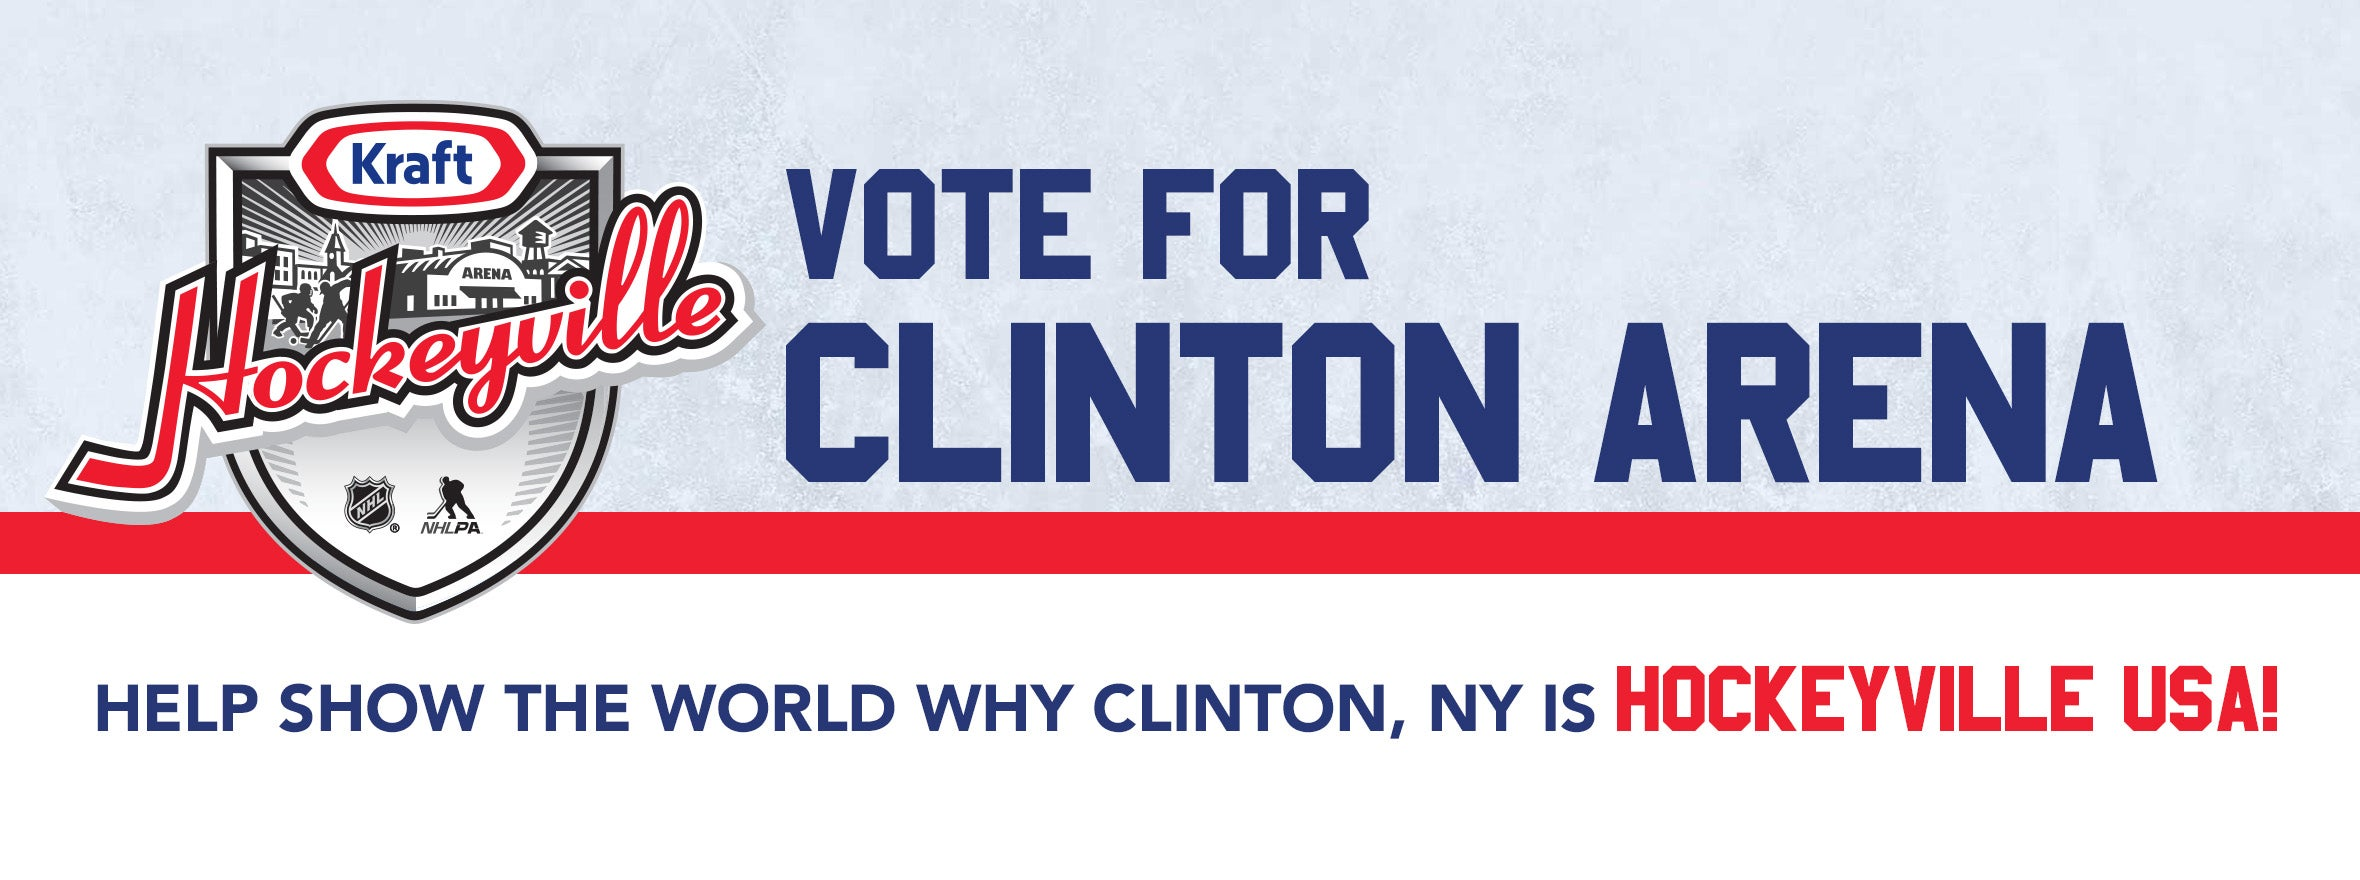 VOTE FOR CLINTON ARENA AT MIDNIGHT